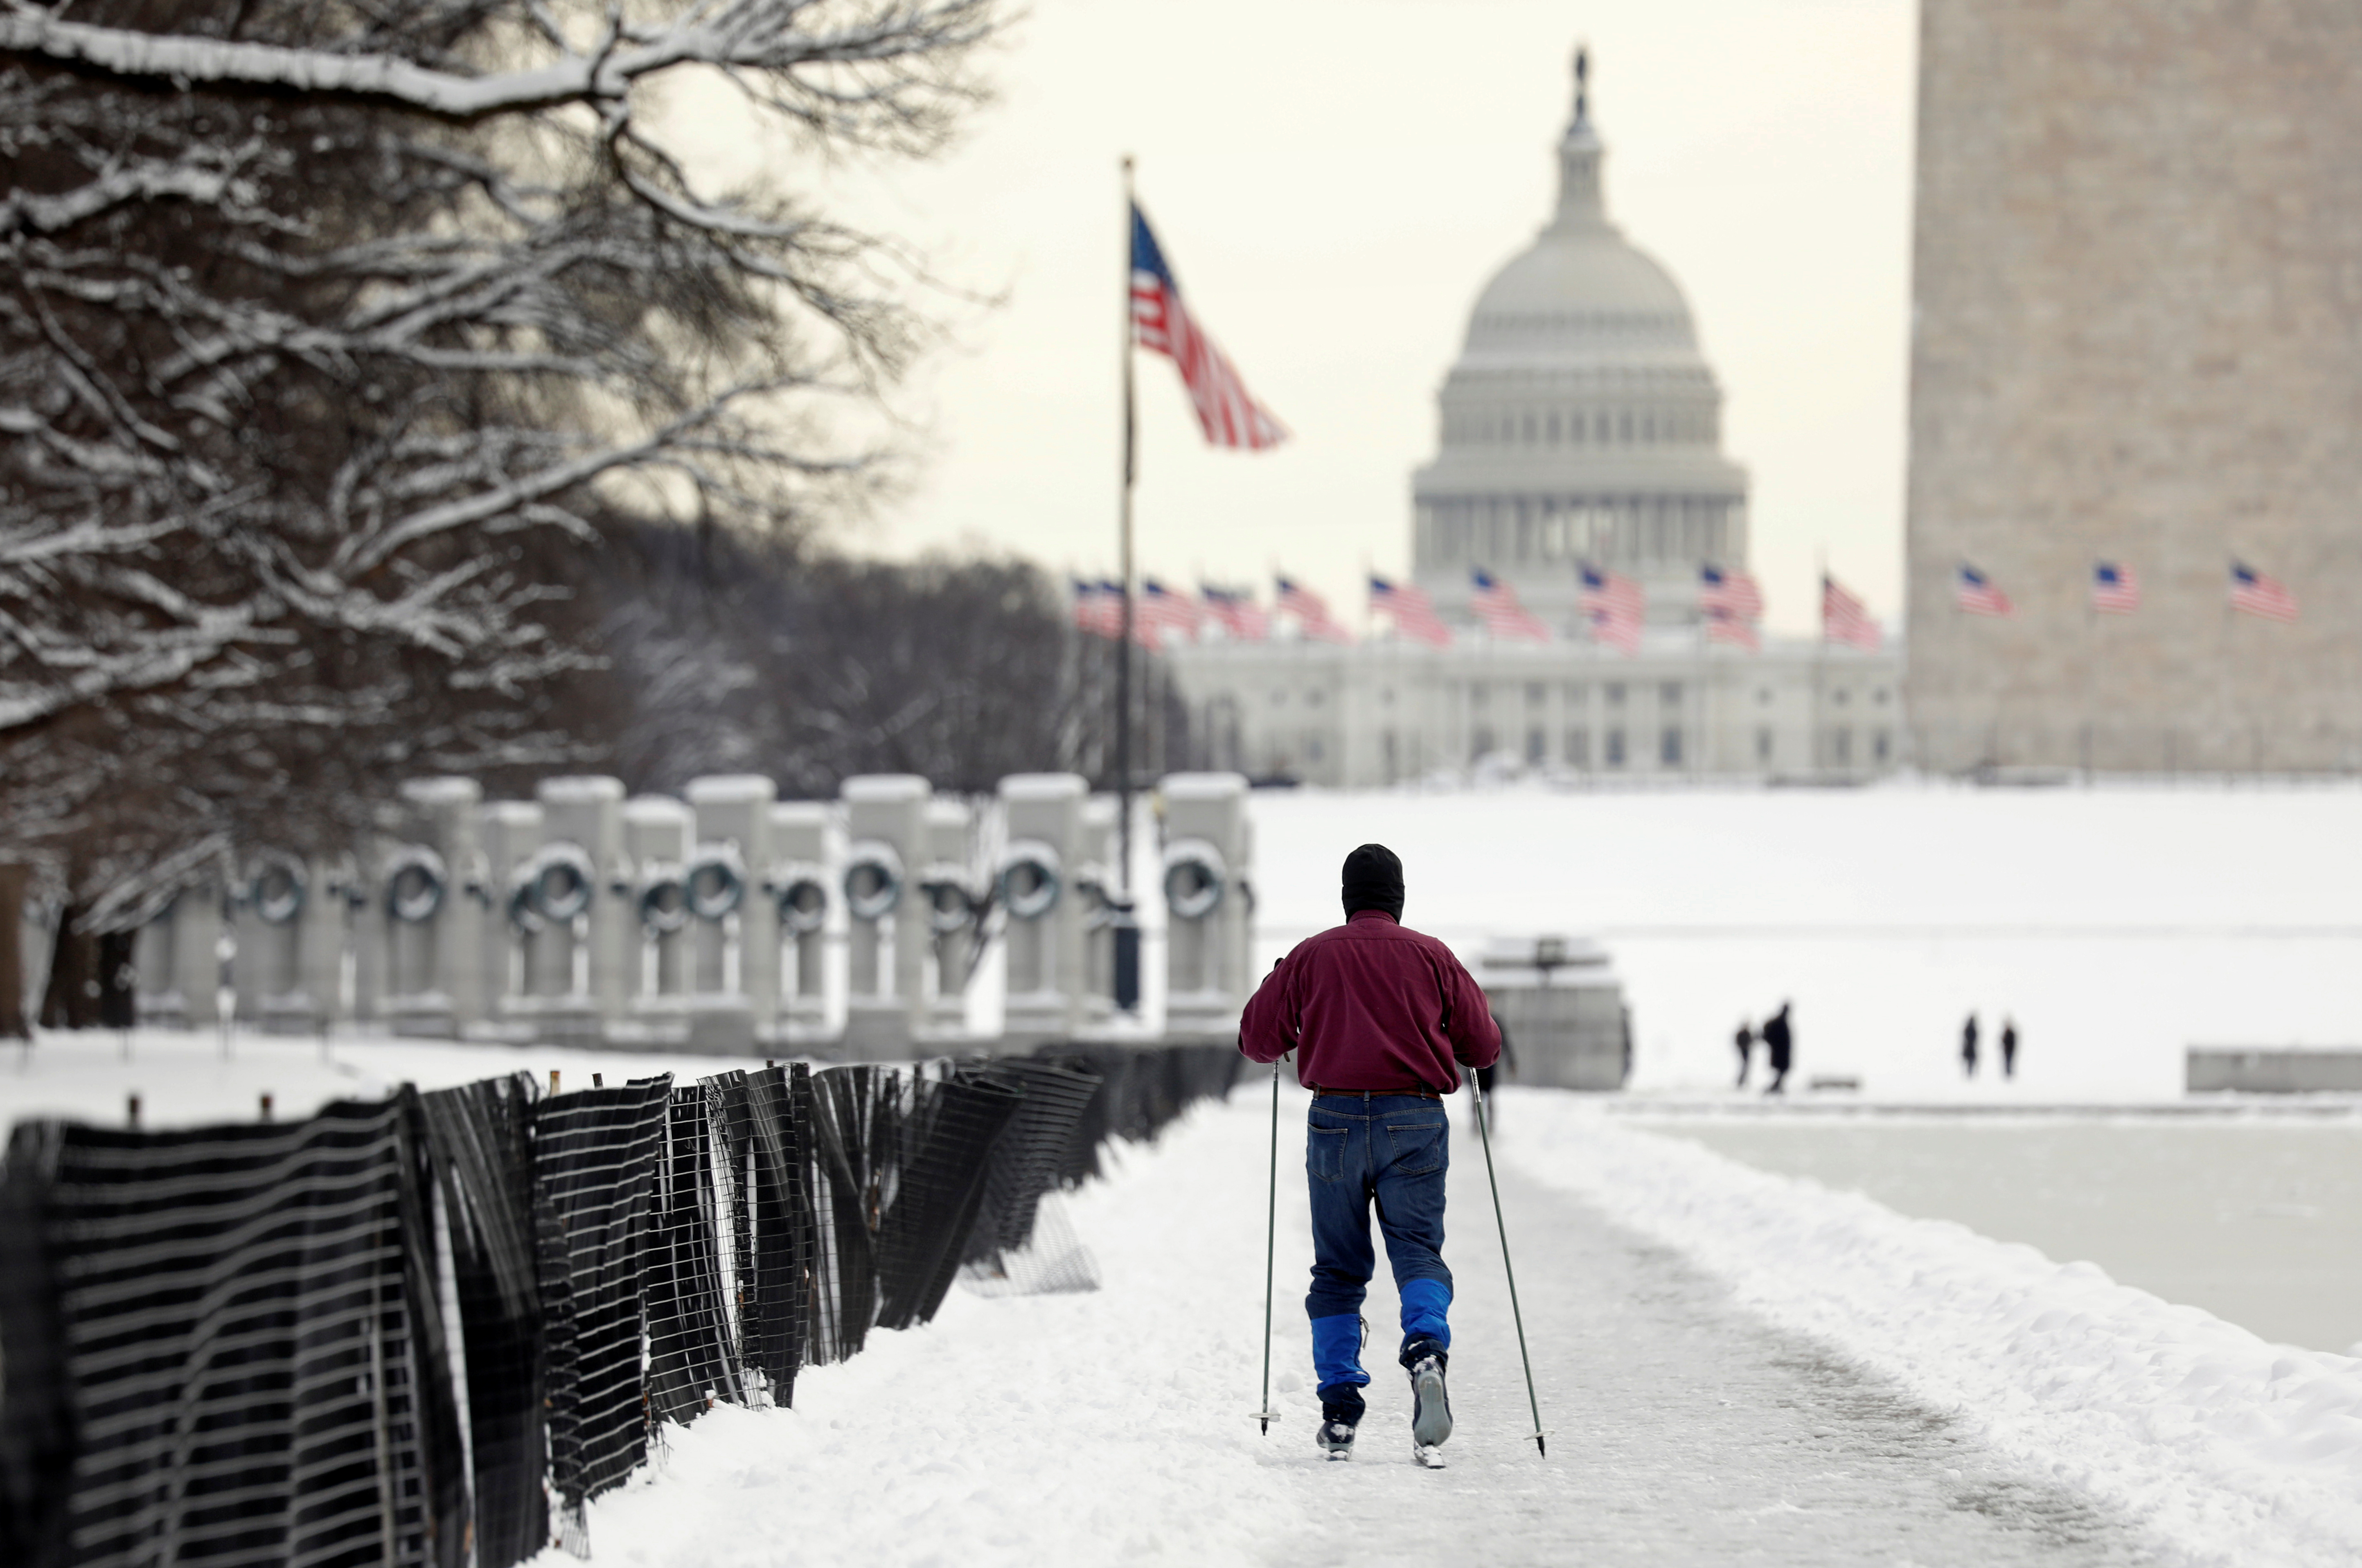 FILE PHOTO: A skier makes his way toward the U.S. Capitol, on Day 24 of the government shutdown in Washington D.C., U.S., January 14, 2019. REUTERS/Kevin Lamarque